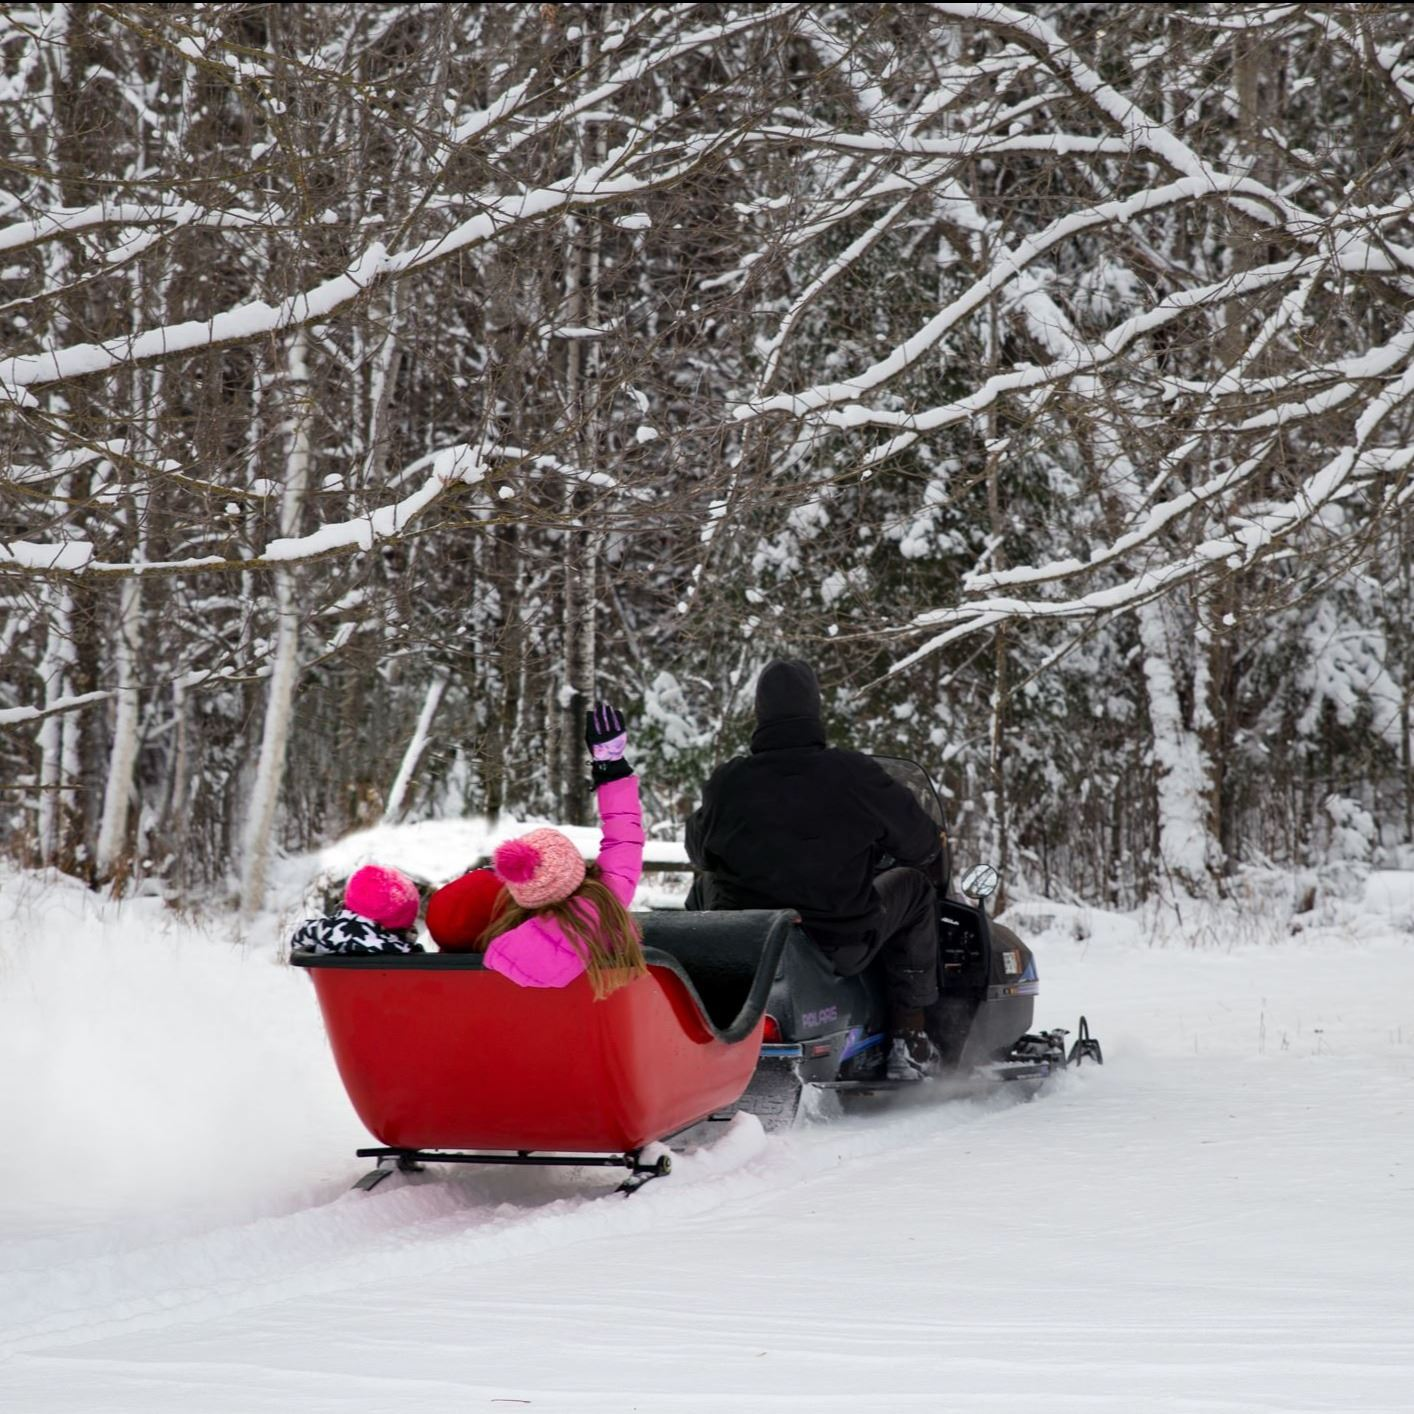 Snowmobile pulling small sled with children.